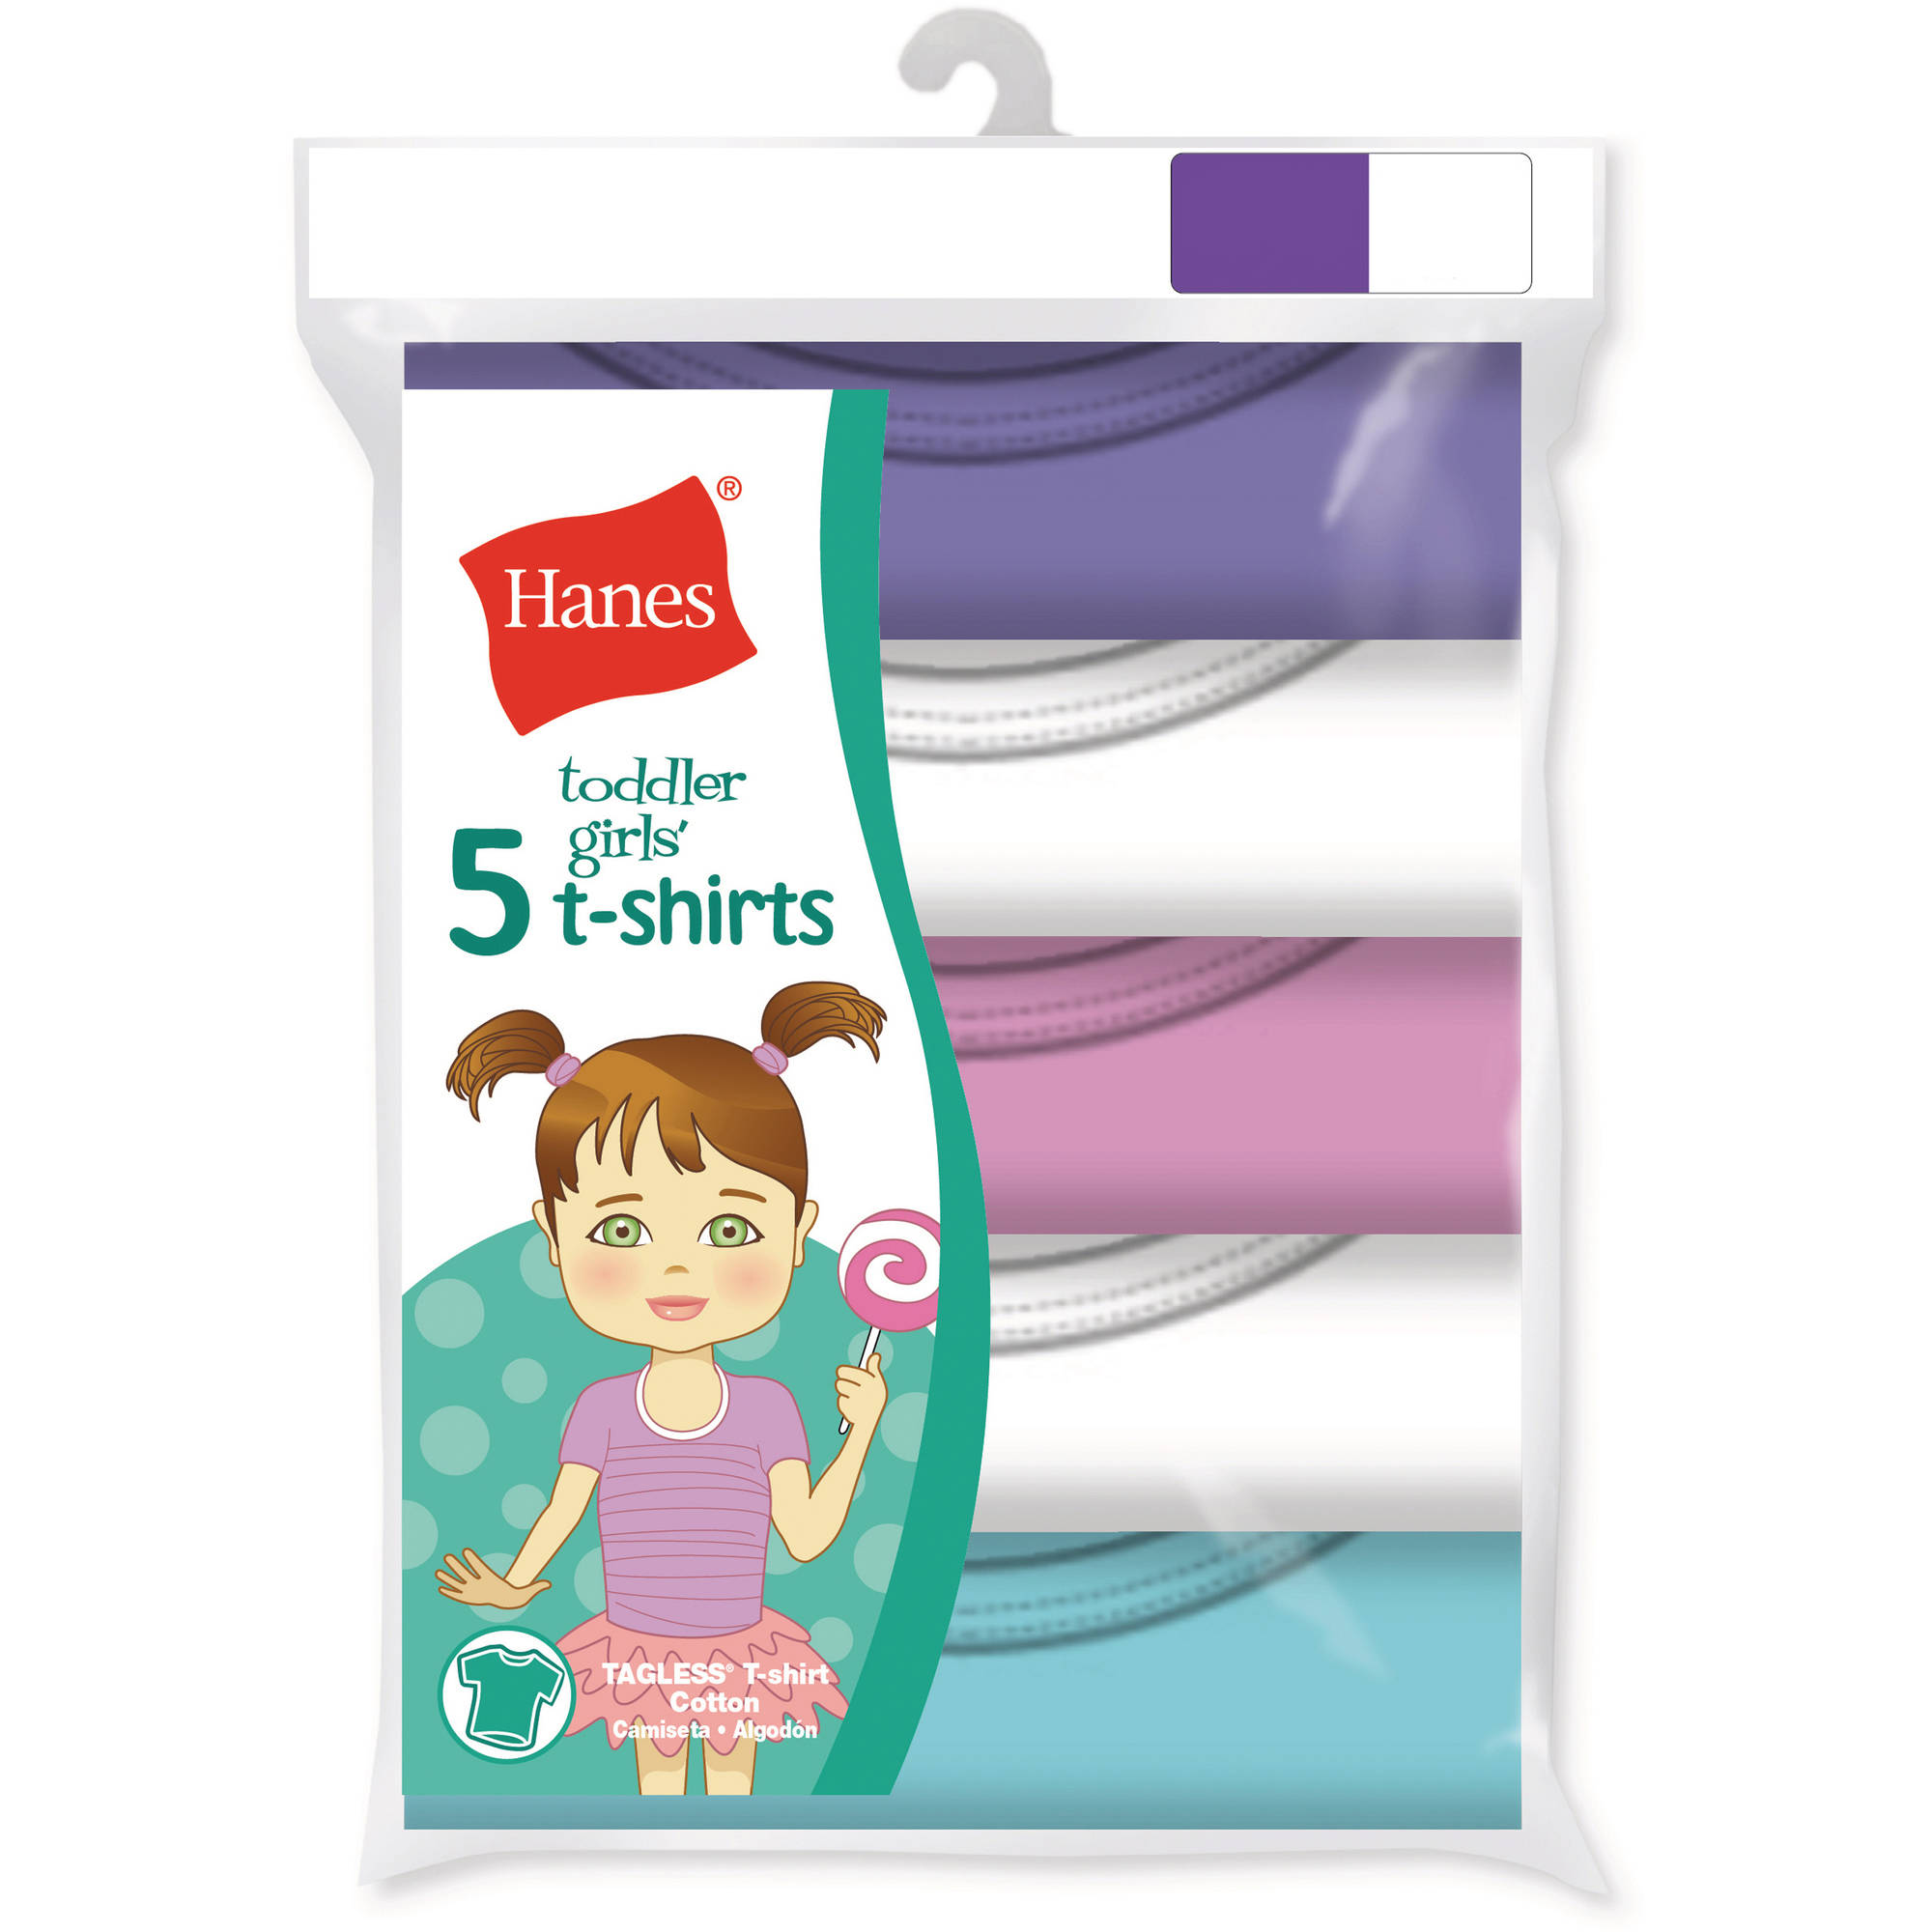 Hanes Toddler Girl Cotton Crew T-shirts, 5 Pack